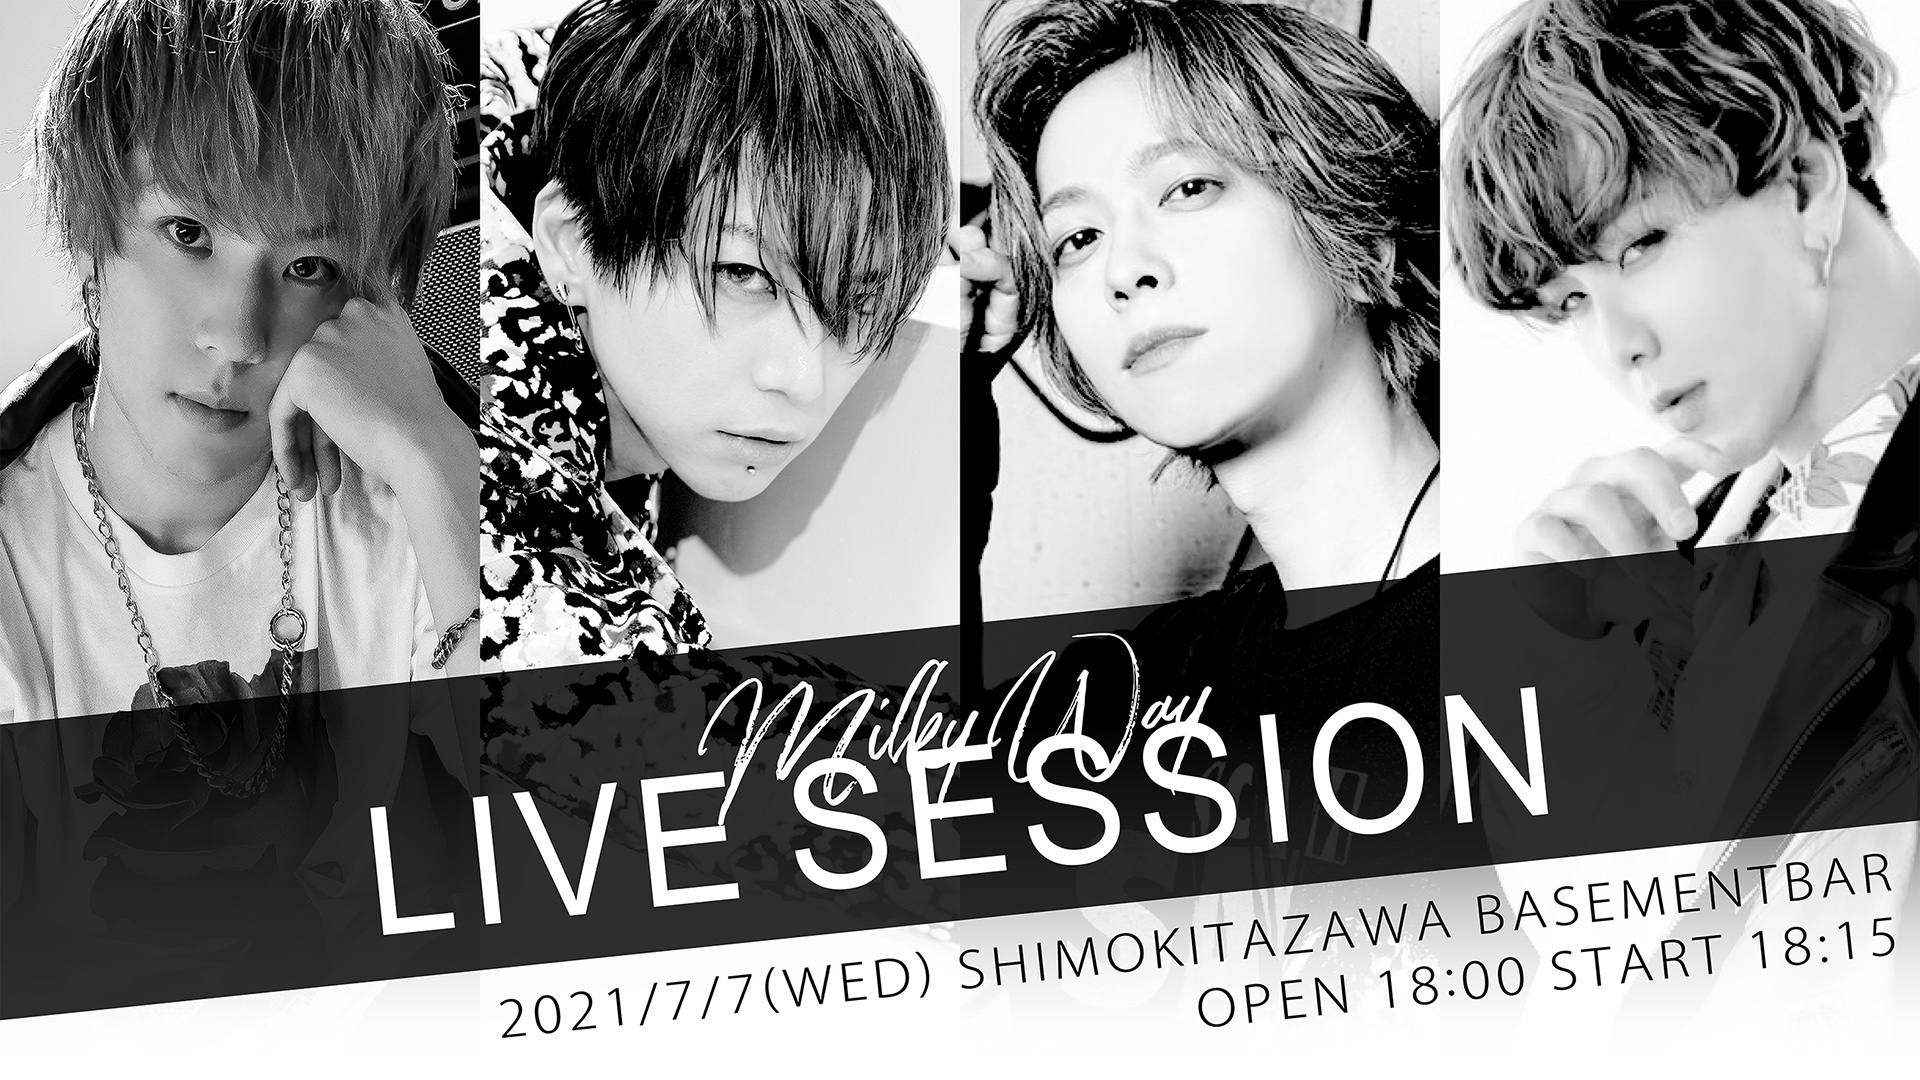 MILKY WAY LIVE SESSION